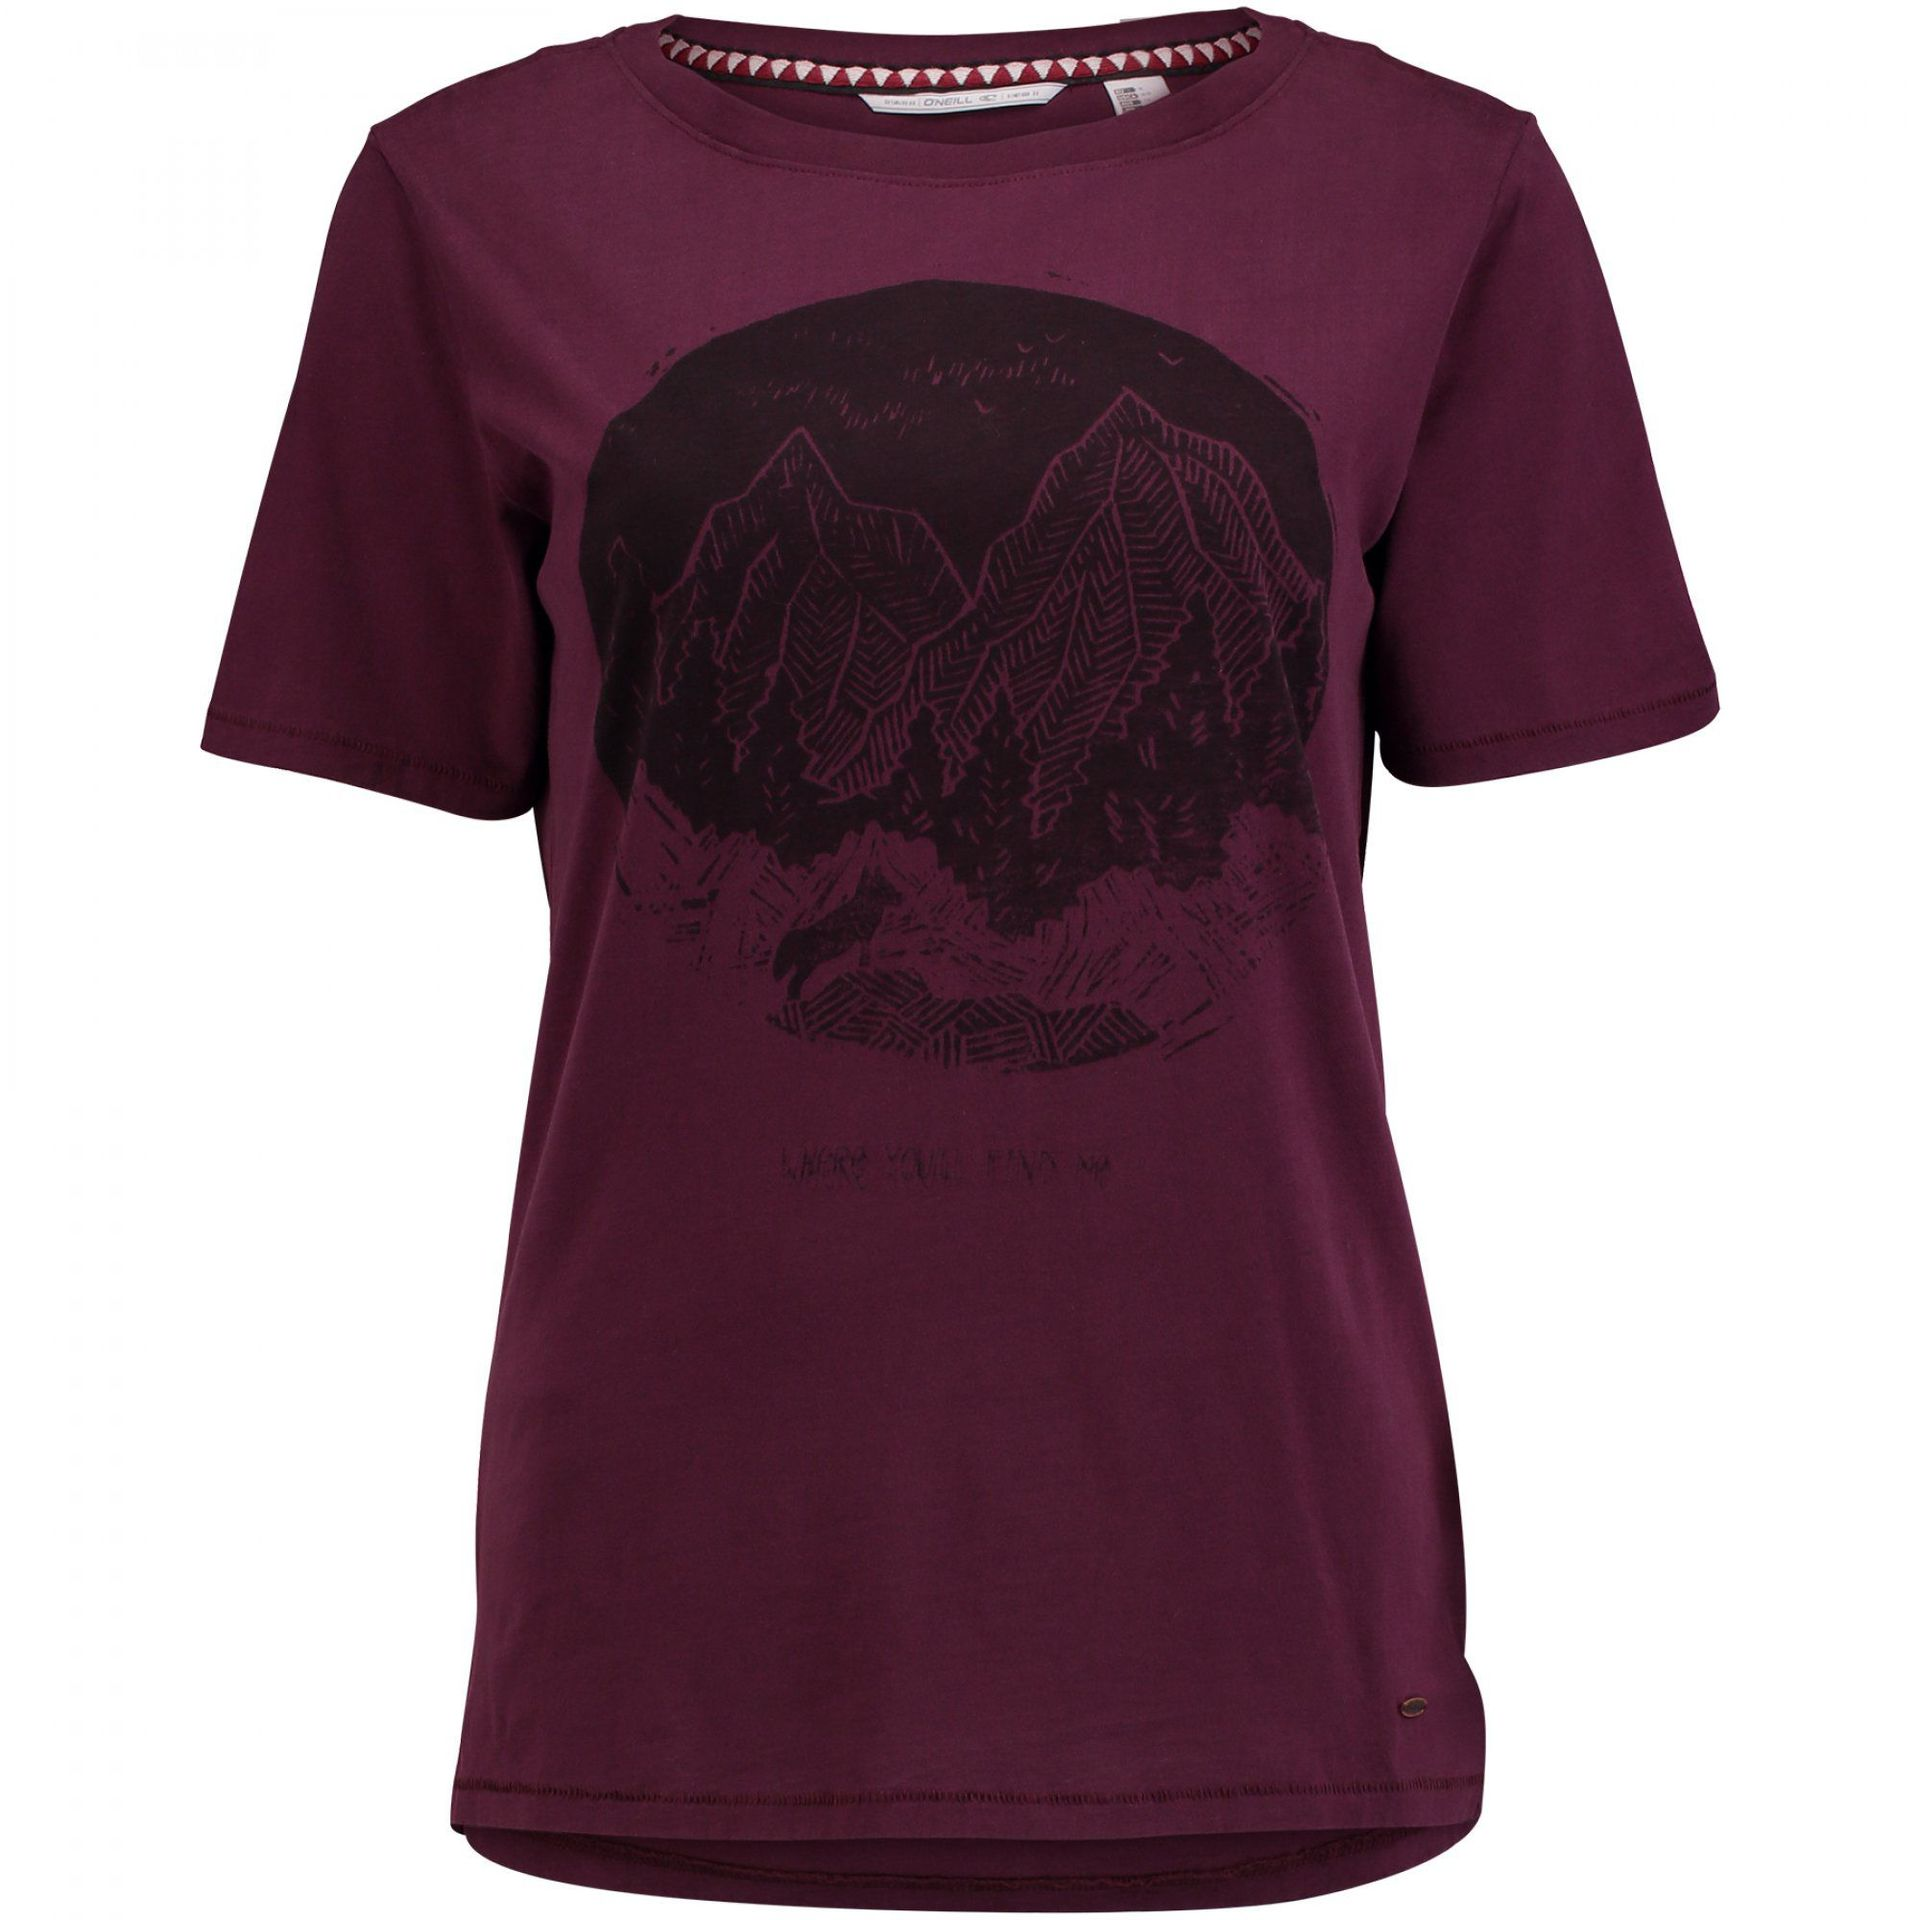 T-SHIRT ONEILL AMERICANA FIG RED